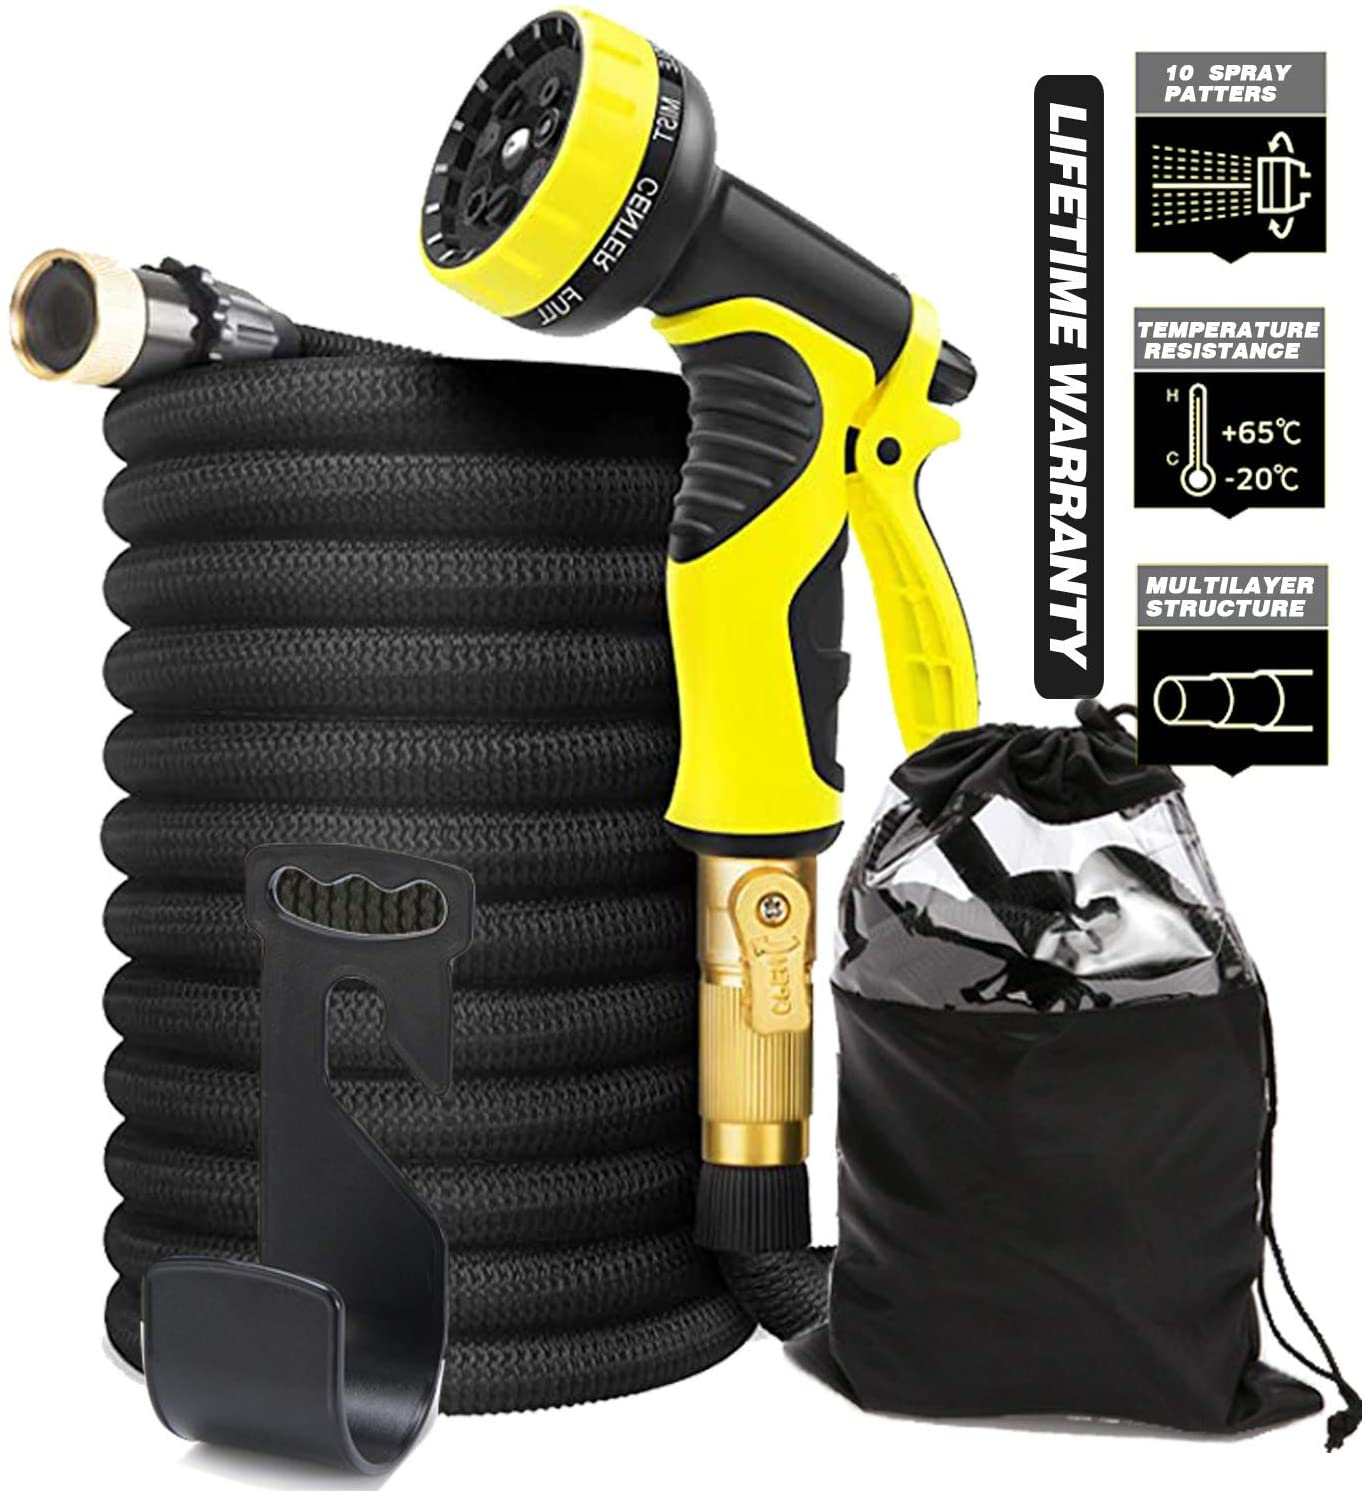 KIRIOUL 50 FT Lightweight Expandable Garden Hose Flexible Water Hose with Durable 3-Layers Latex and 10 Function Nozzle, No-Rust Brass Connectors, Leak Proof, Durable, Best for Watering/Washing